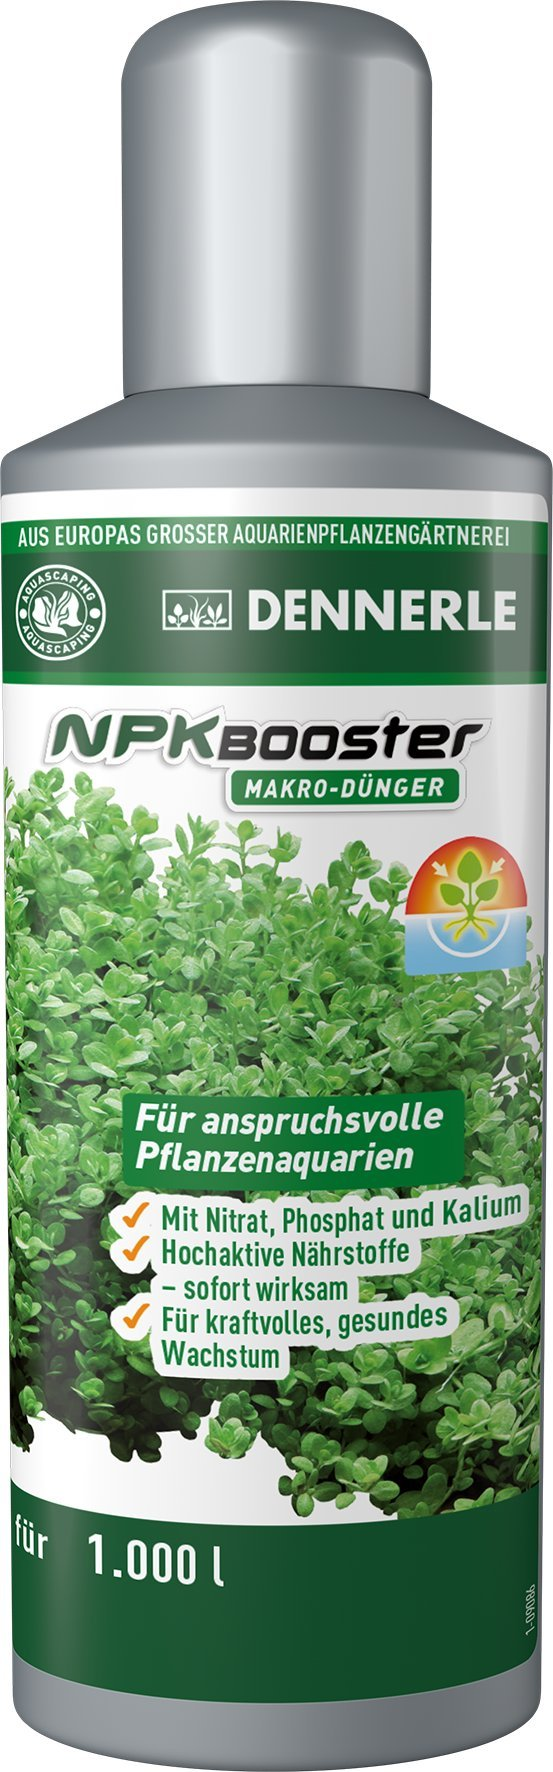 Dennerle NPK Booster 100ml